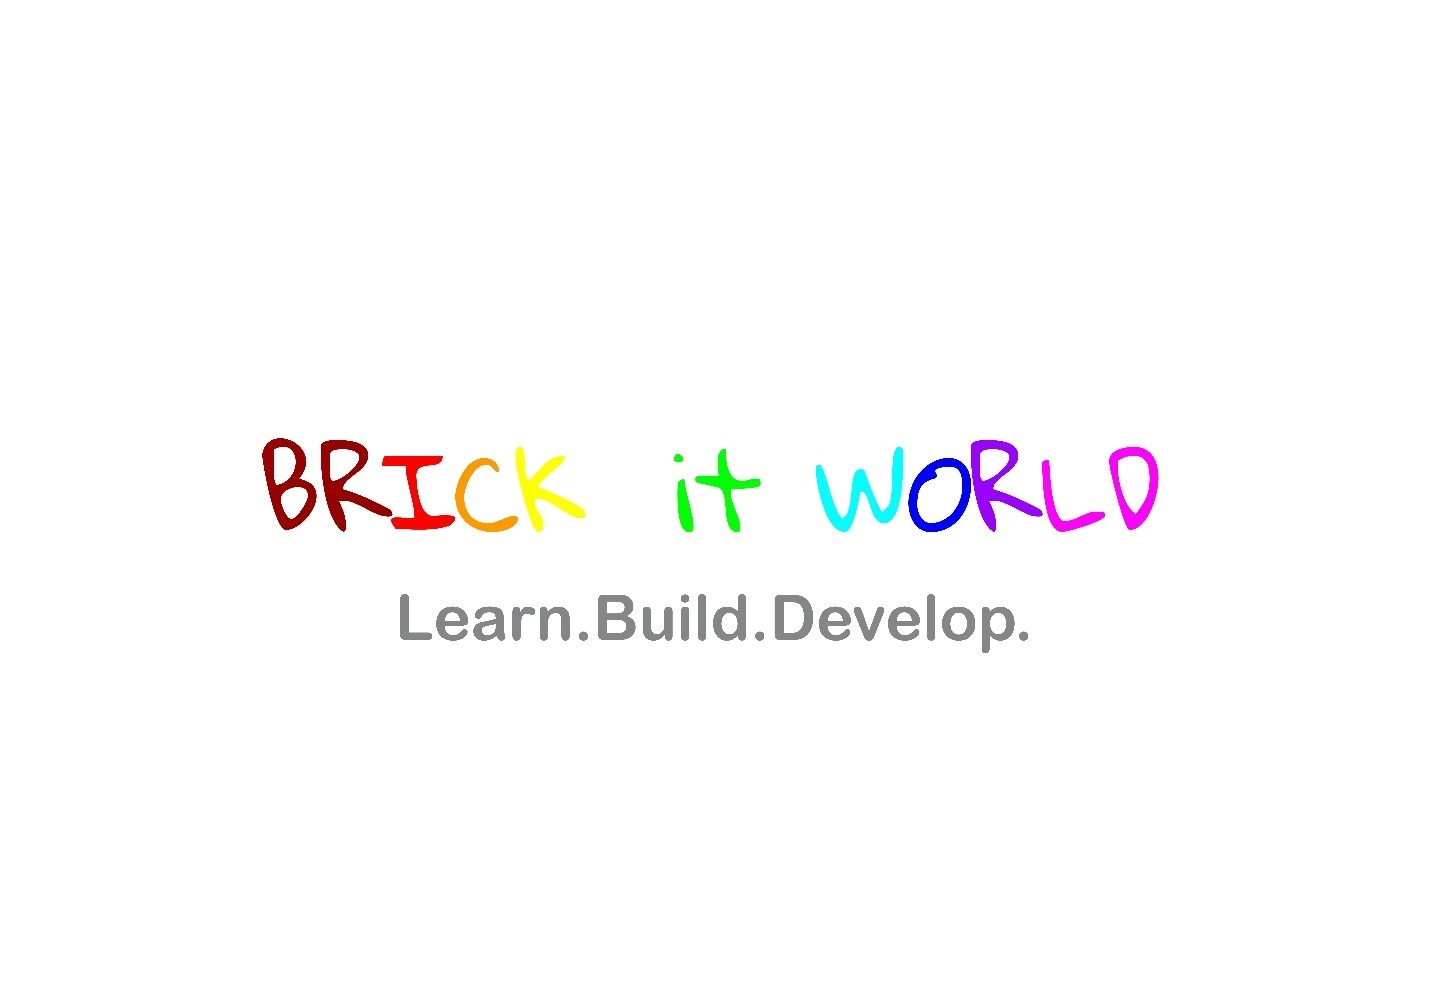 BRICK It World